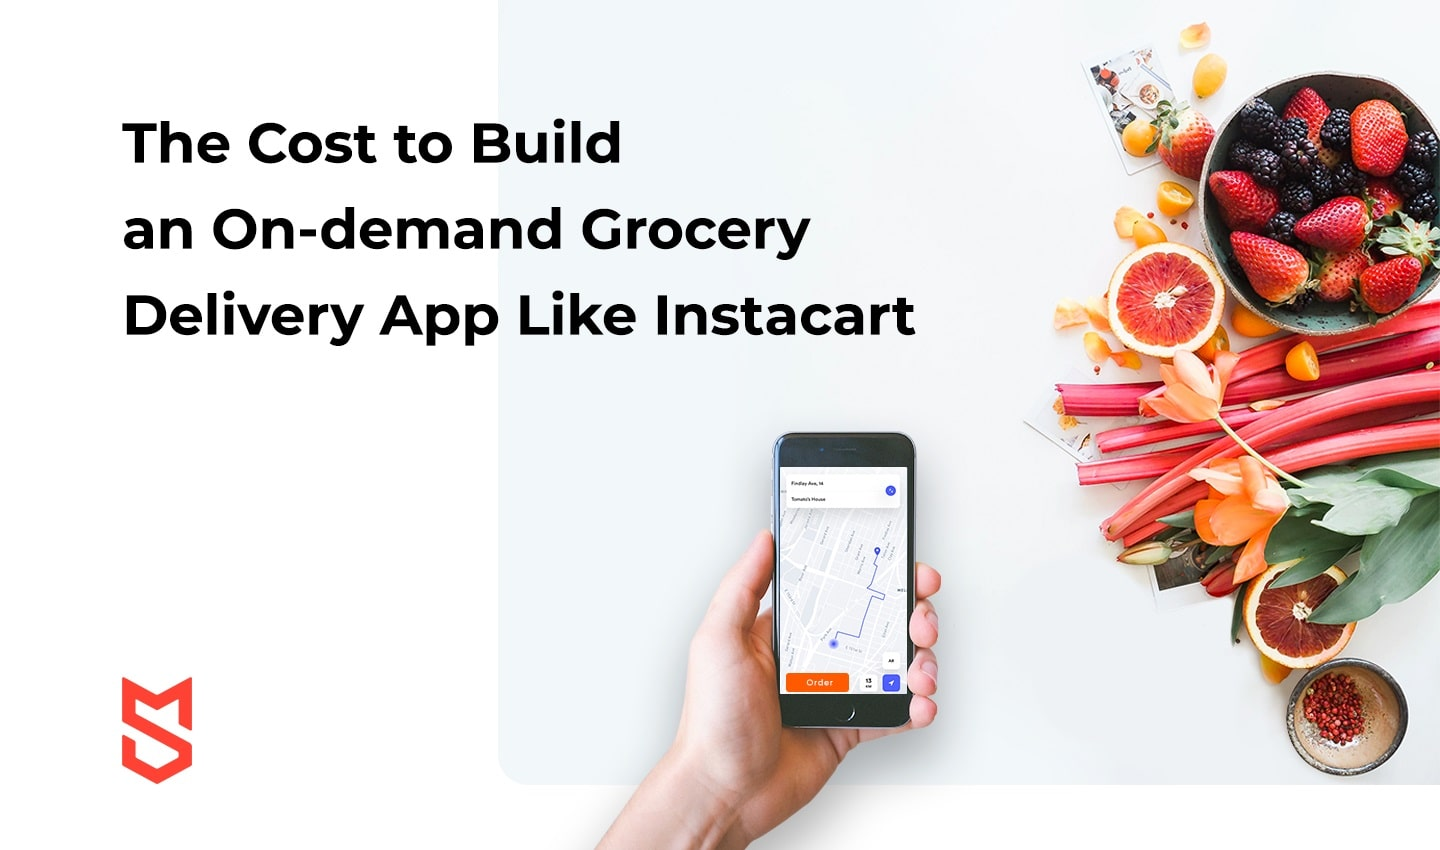 The Cost to Build an On-demand Grocery Delivery App Like Instacart